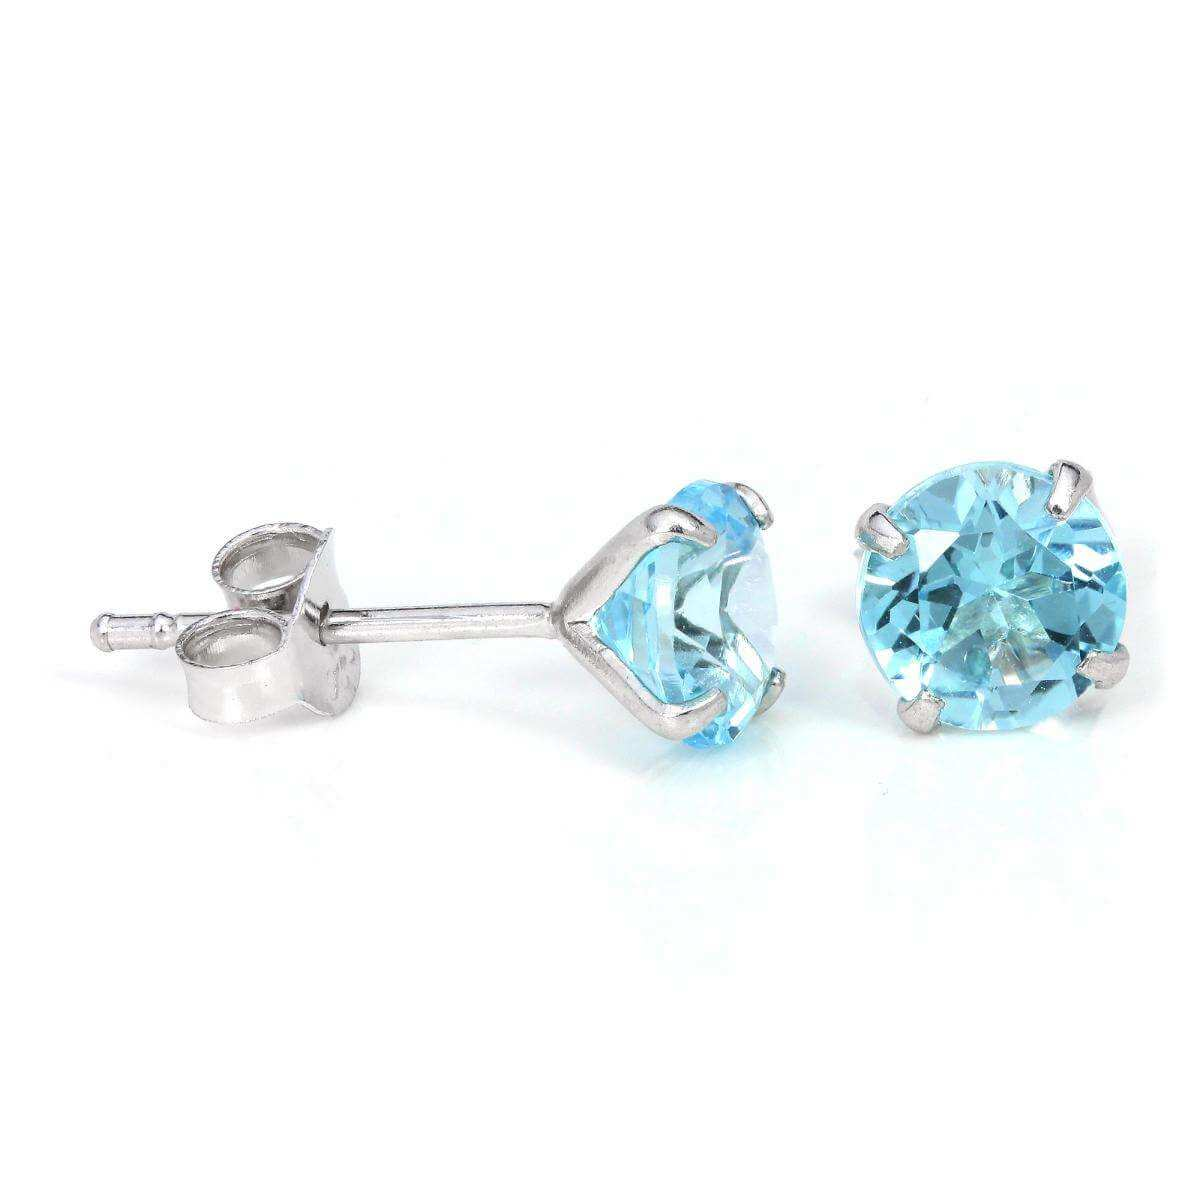 Sterling Silver & 6mm Round 4 Prong Set Sky Blue Topaz Gemstone Stud Earrings